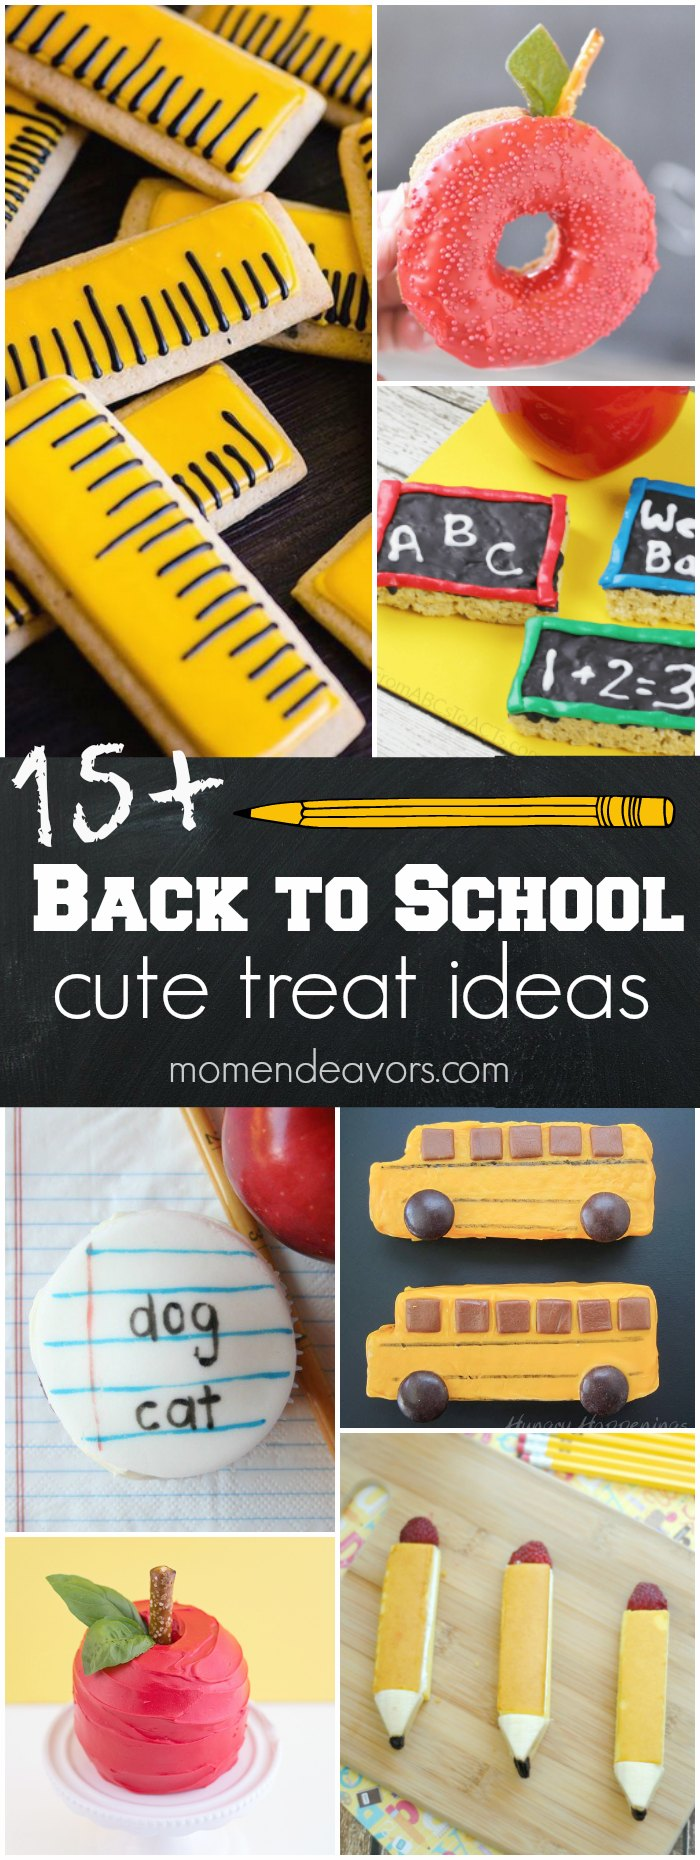 15+ Back to School Cute Treat Ideas